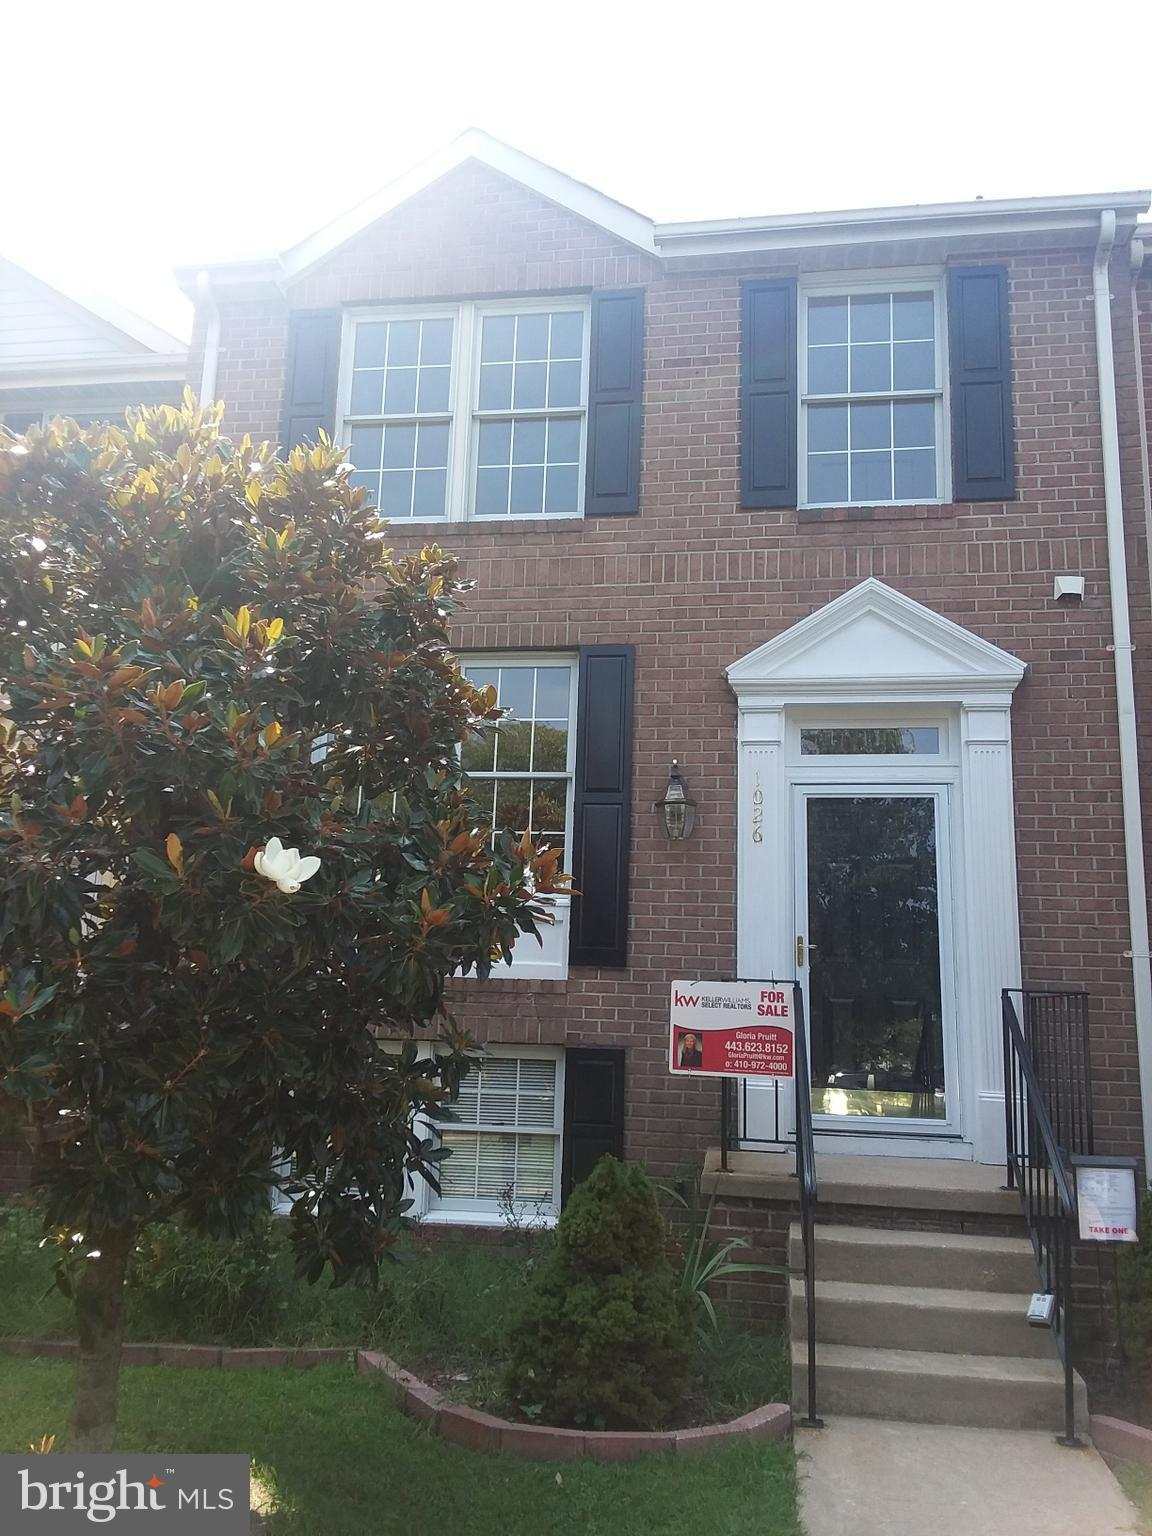 1026 ARBORWOOD PLACE, CHESTNUT HILL COVE, MD 21226